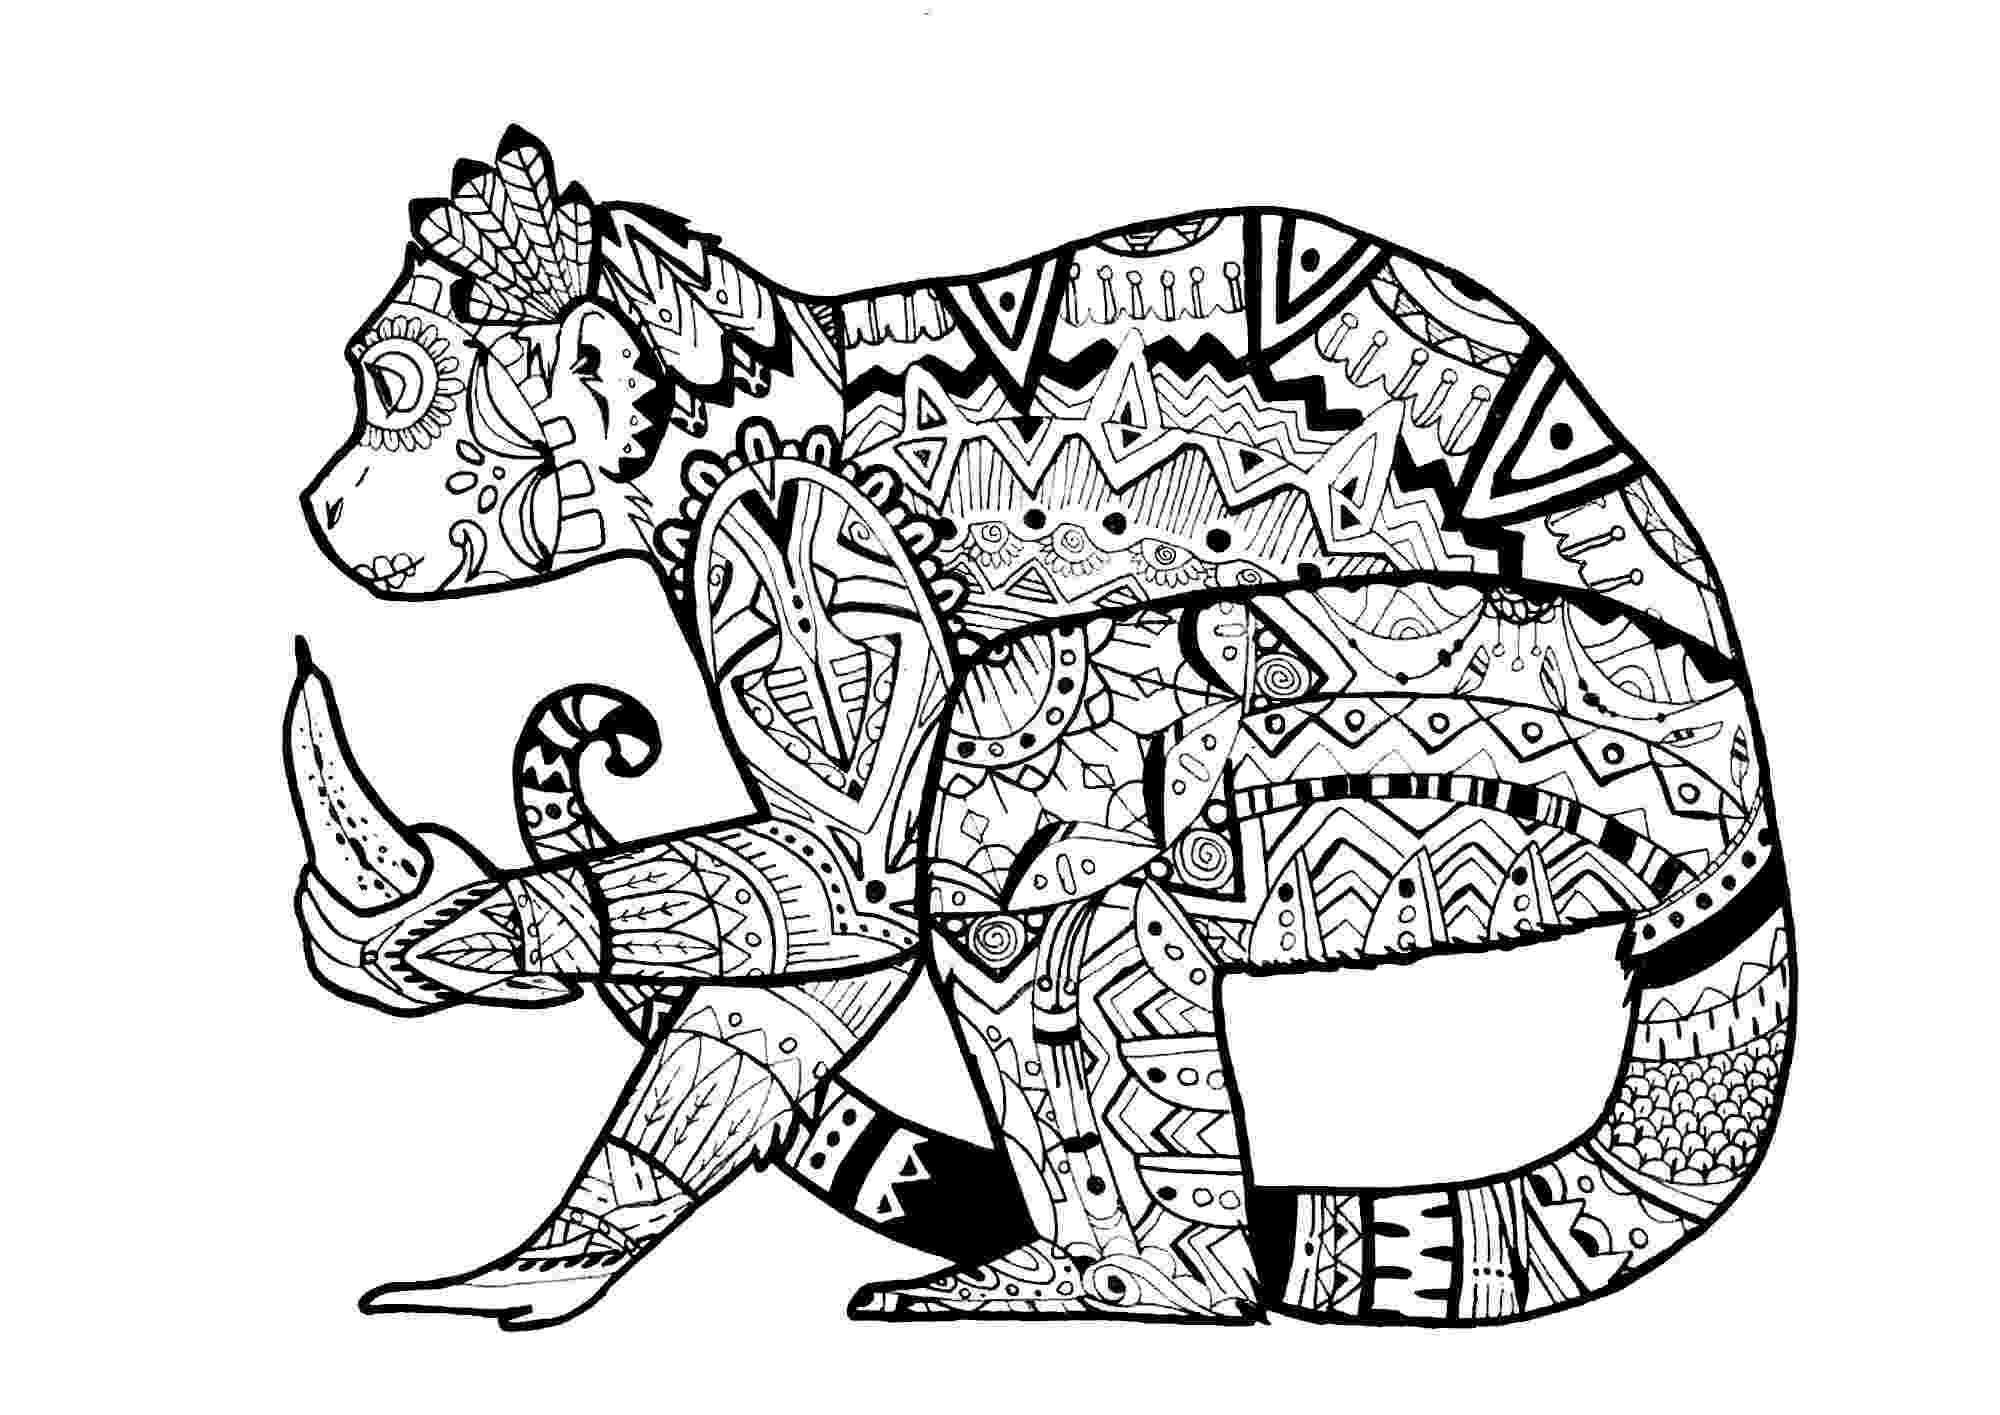 hard animal coloring pages coloring pages for adults difficult animals 46 coloring animal hard coloring pages